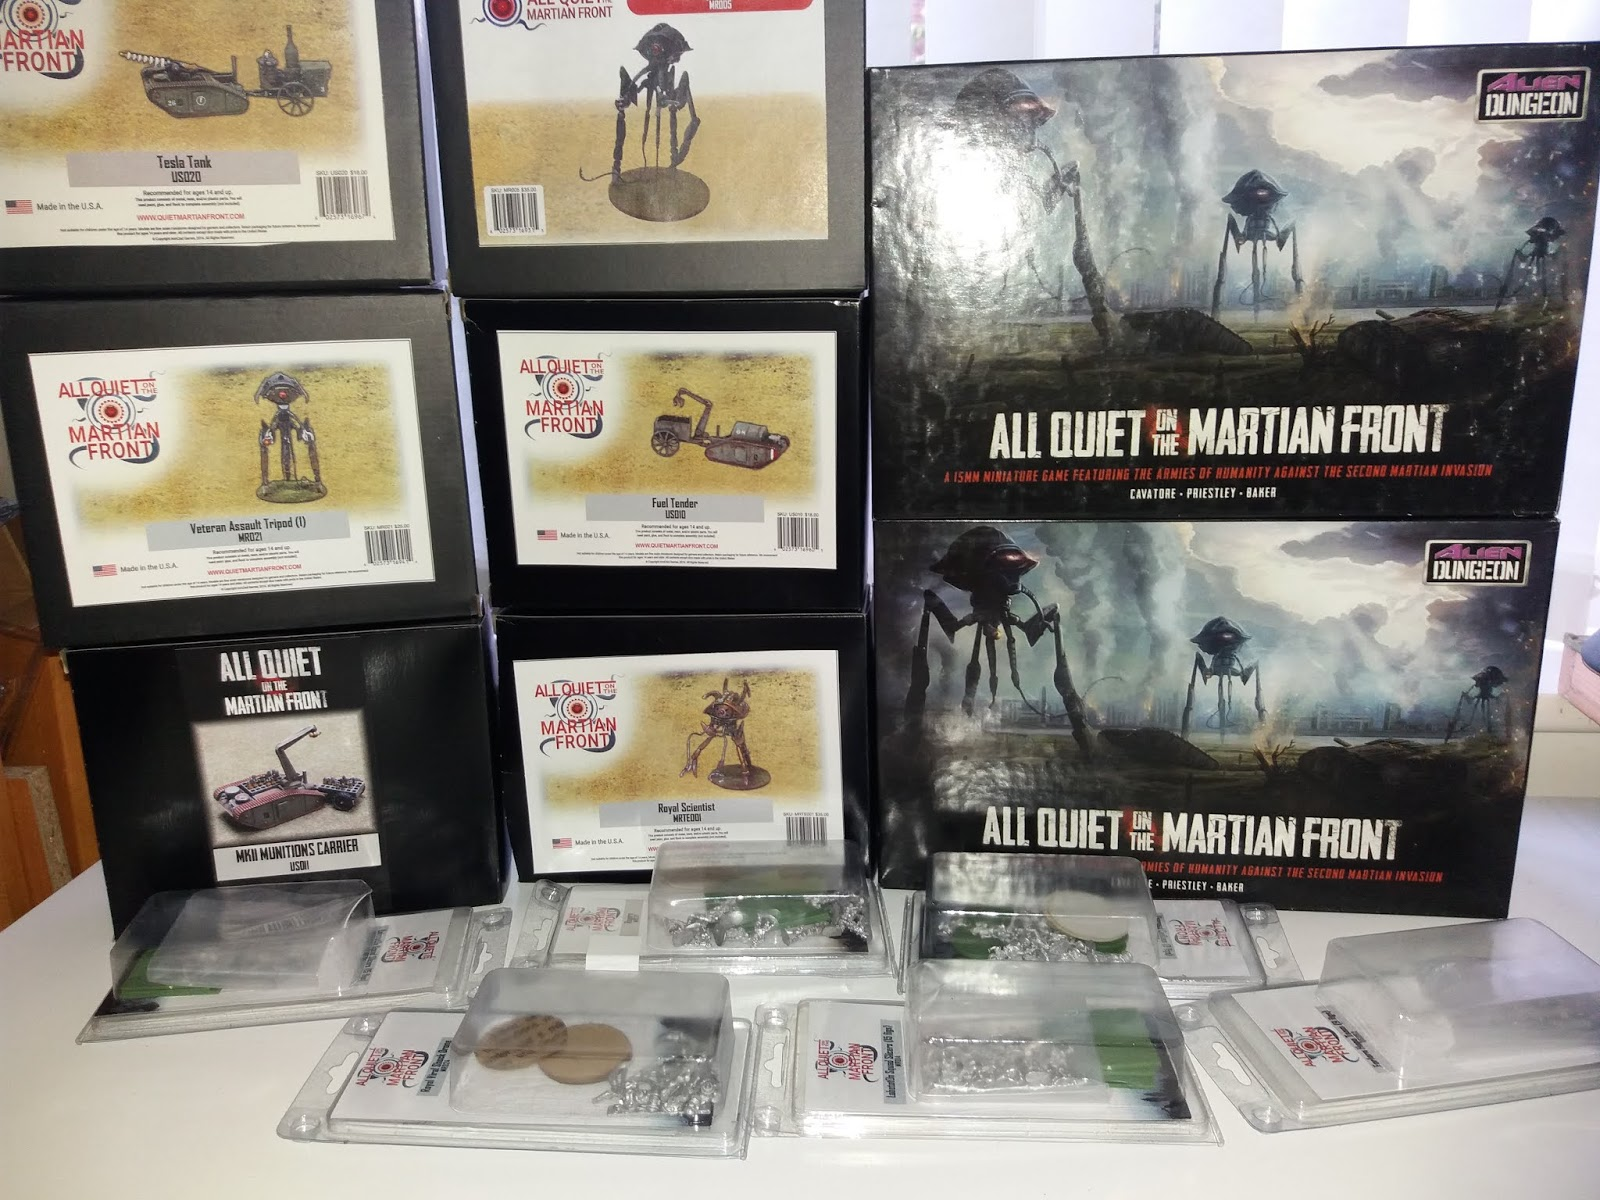 Aqmf wargaming the martian invasion: aqmf - meet my martians and